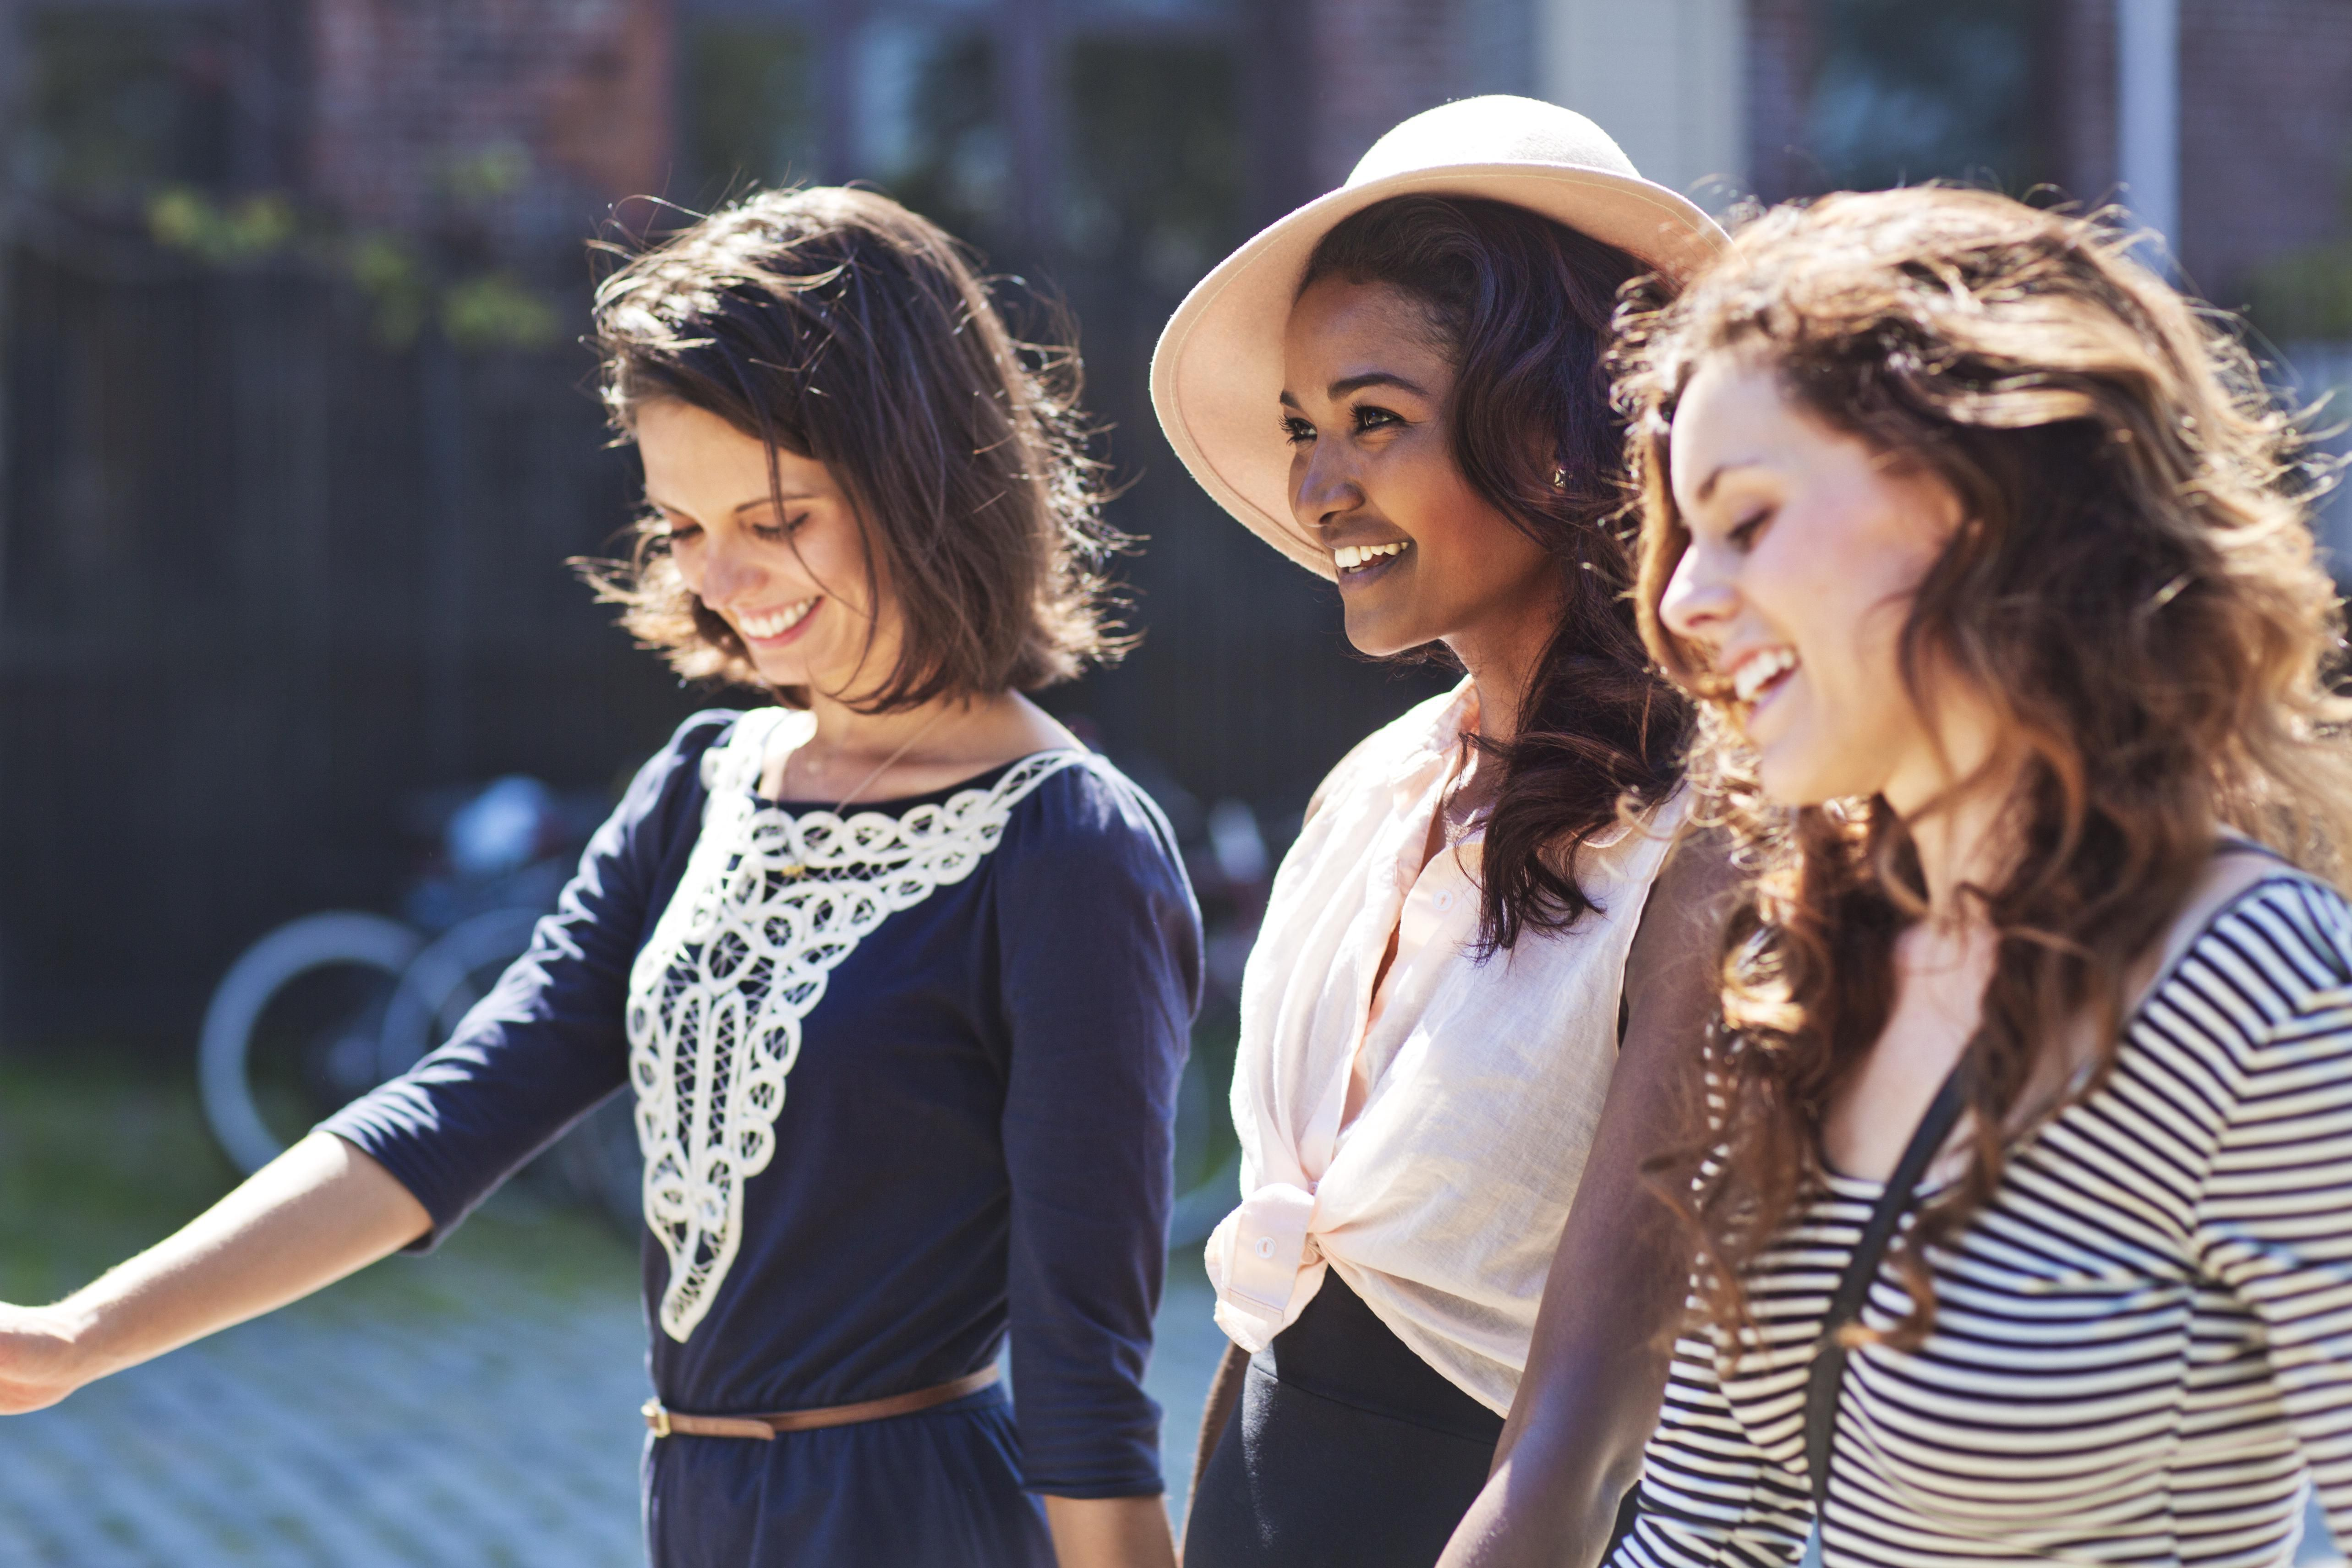 Healthy Boundaries for Every Type of Friendship